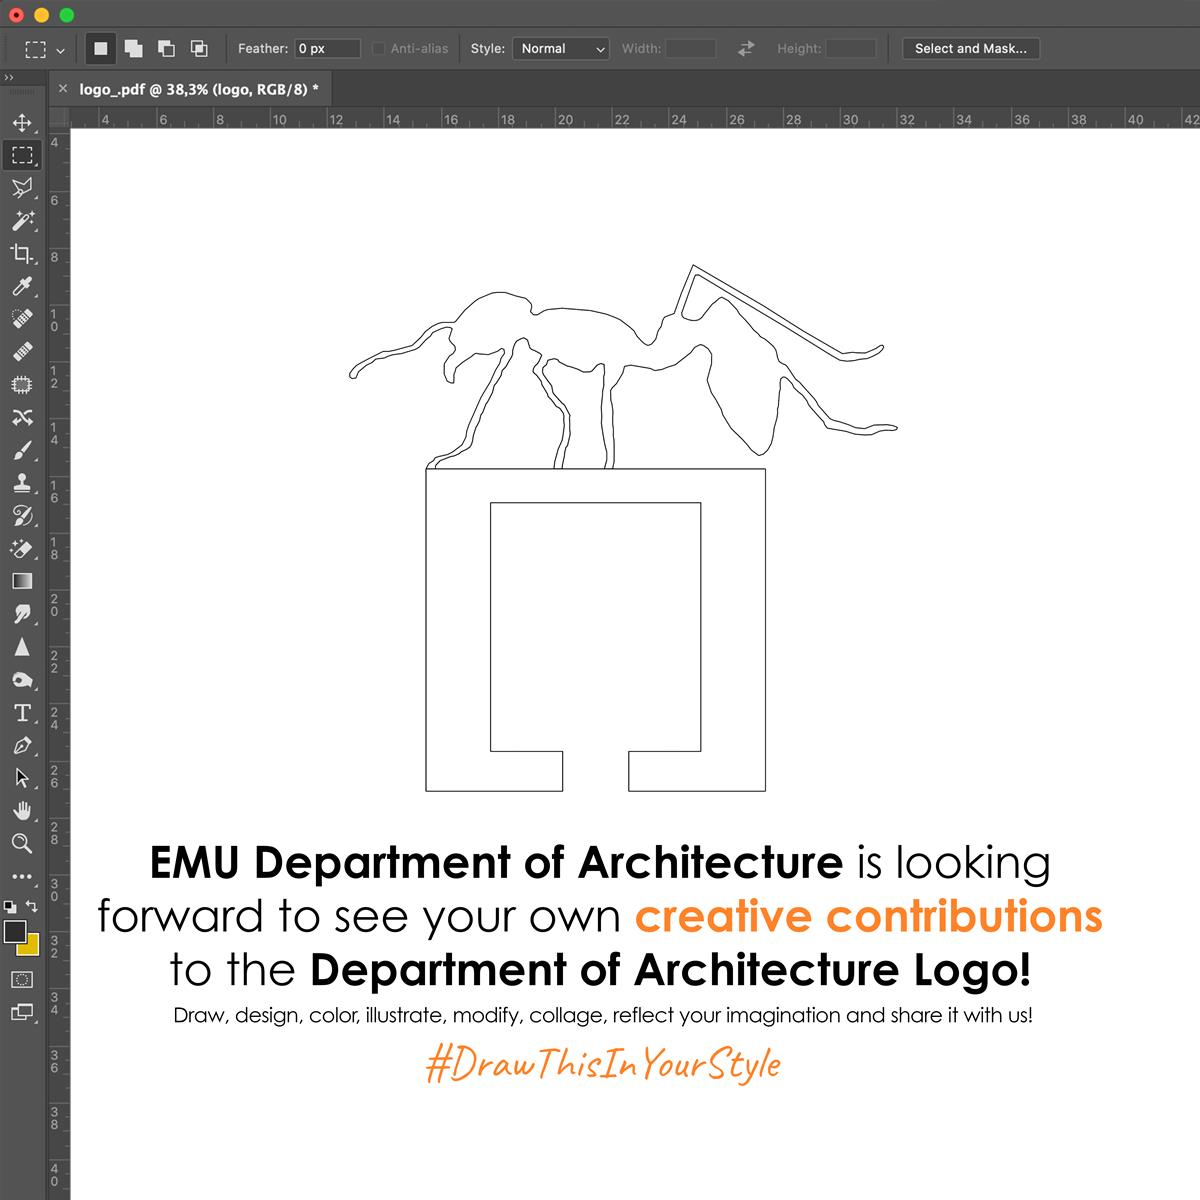 Draw Department of Architecture logo in your style!